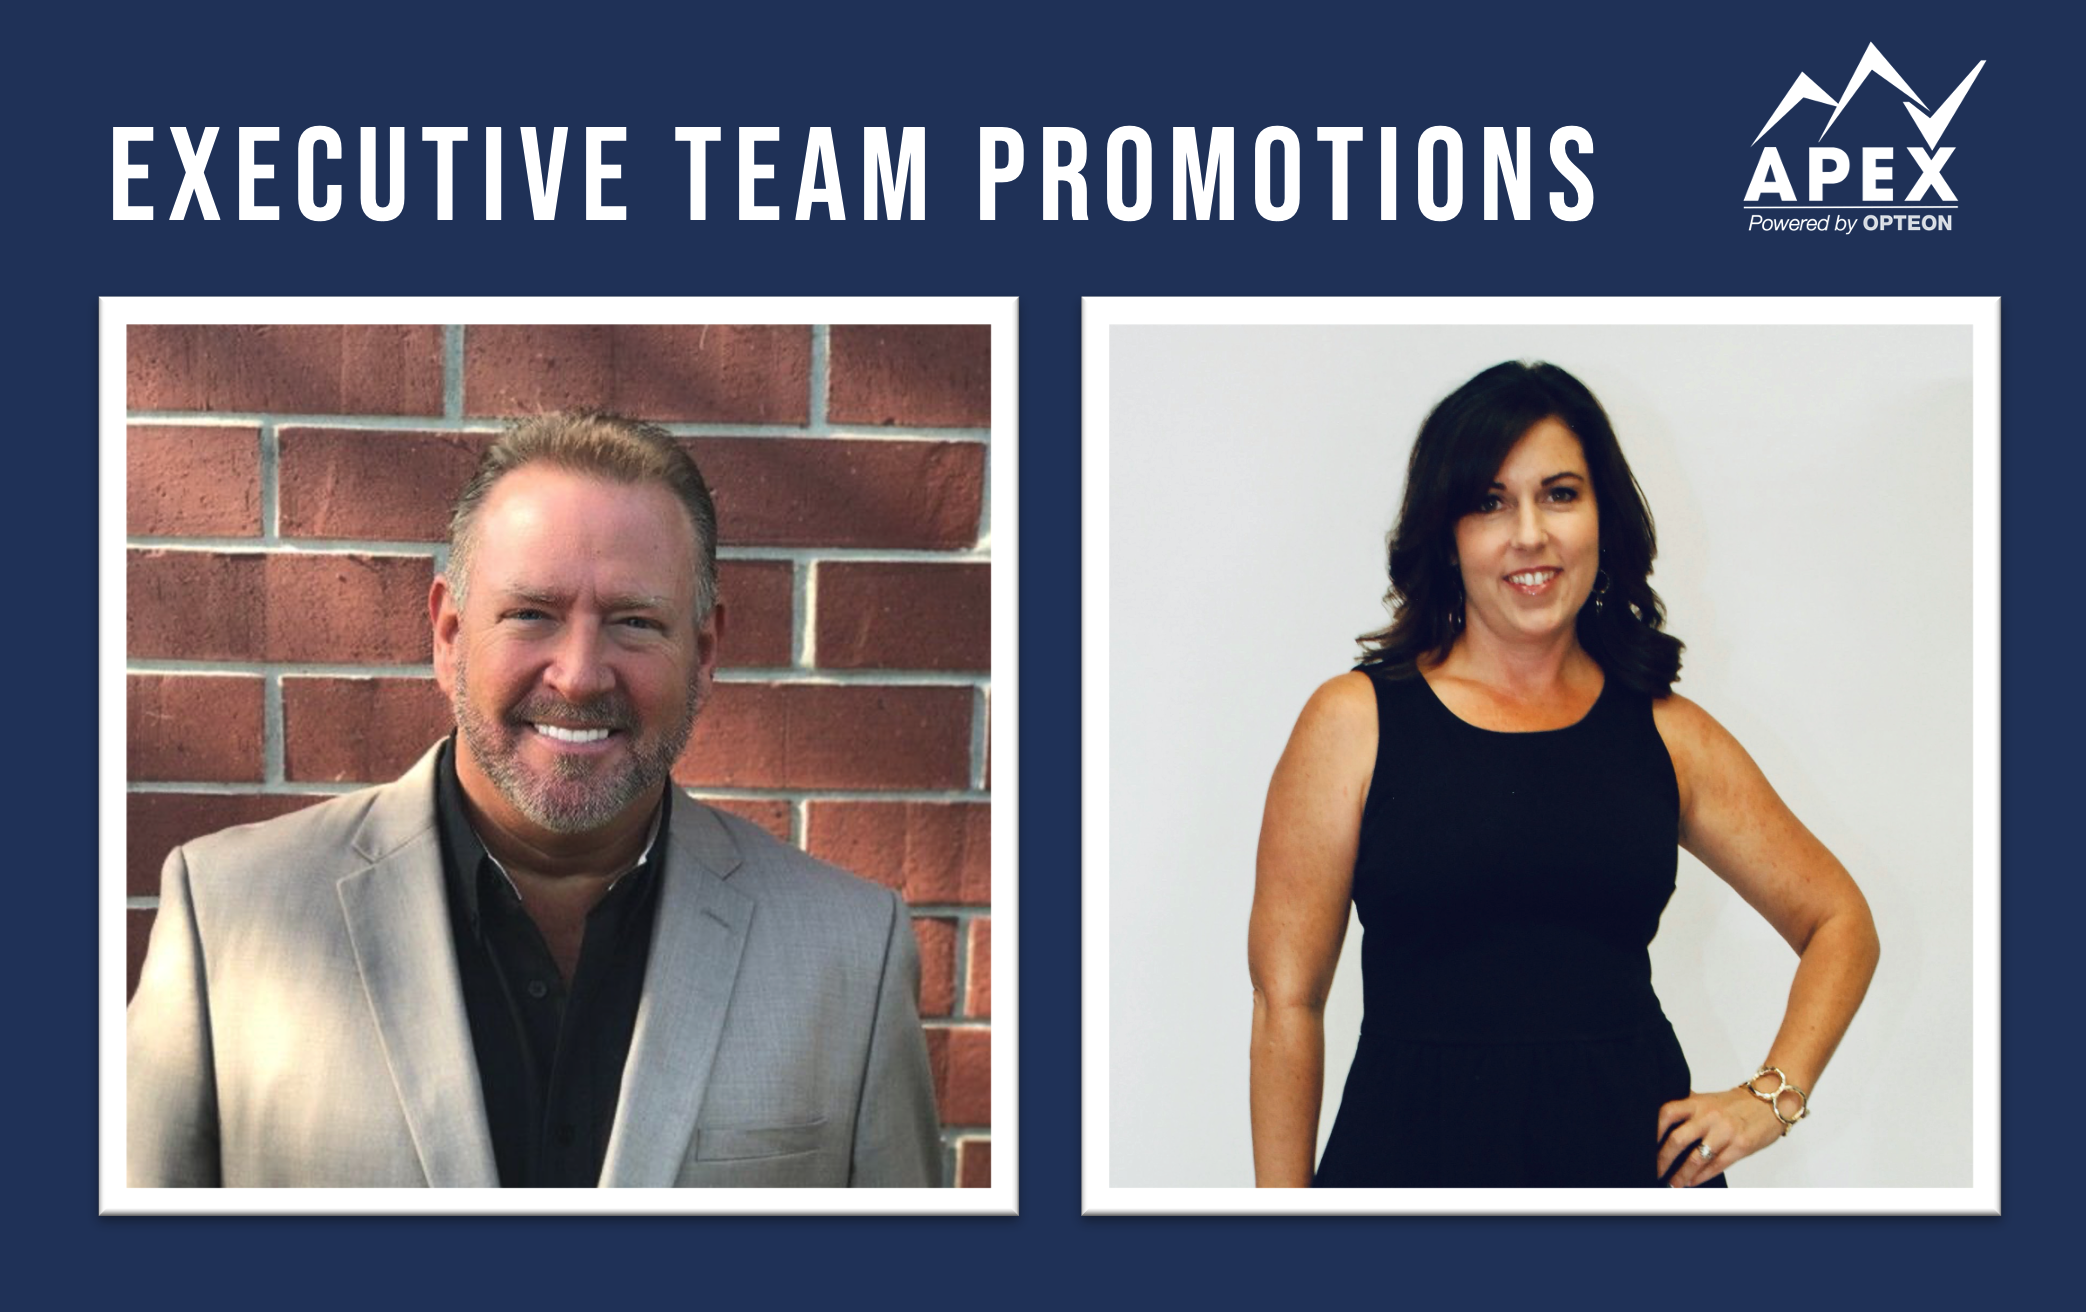 Apex Announces New Additions to Executive Leadership Team